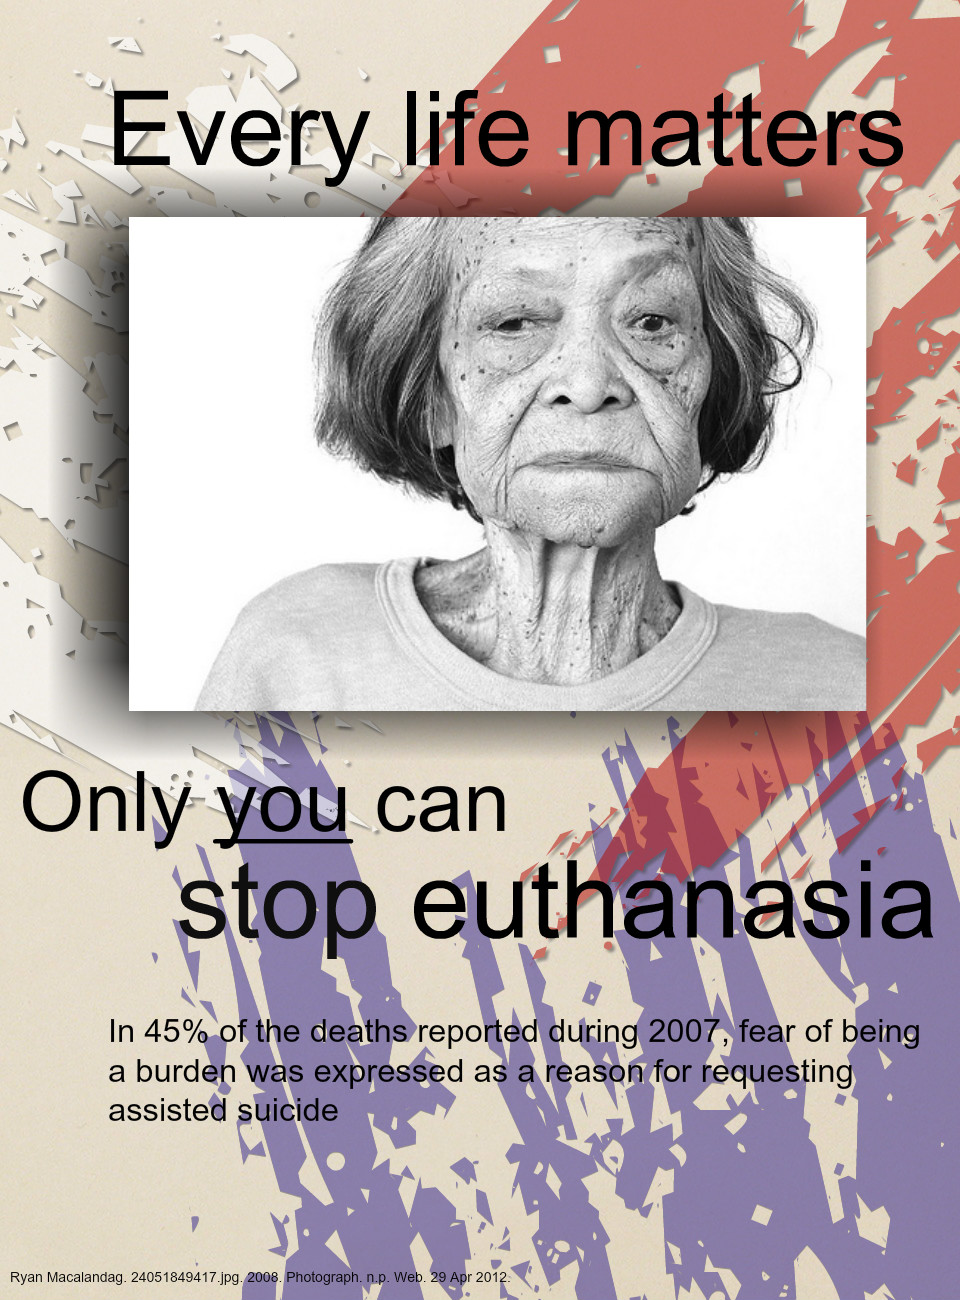 for and against essays about euthanasia